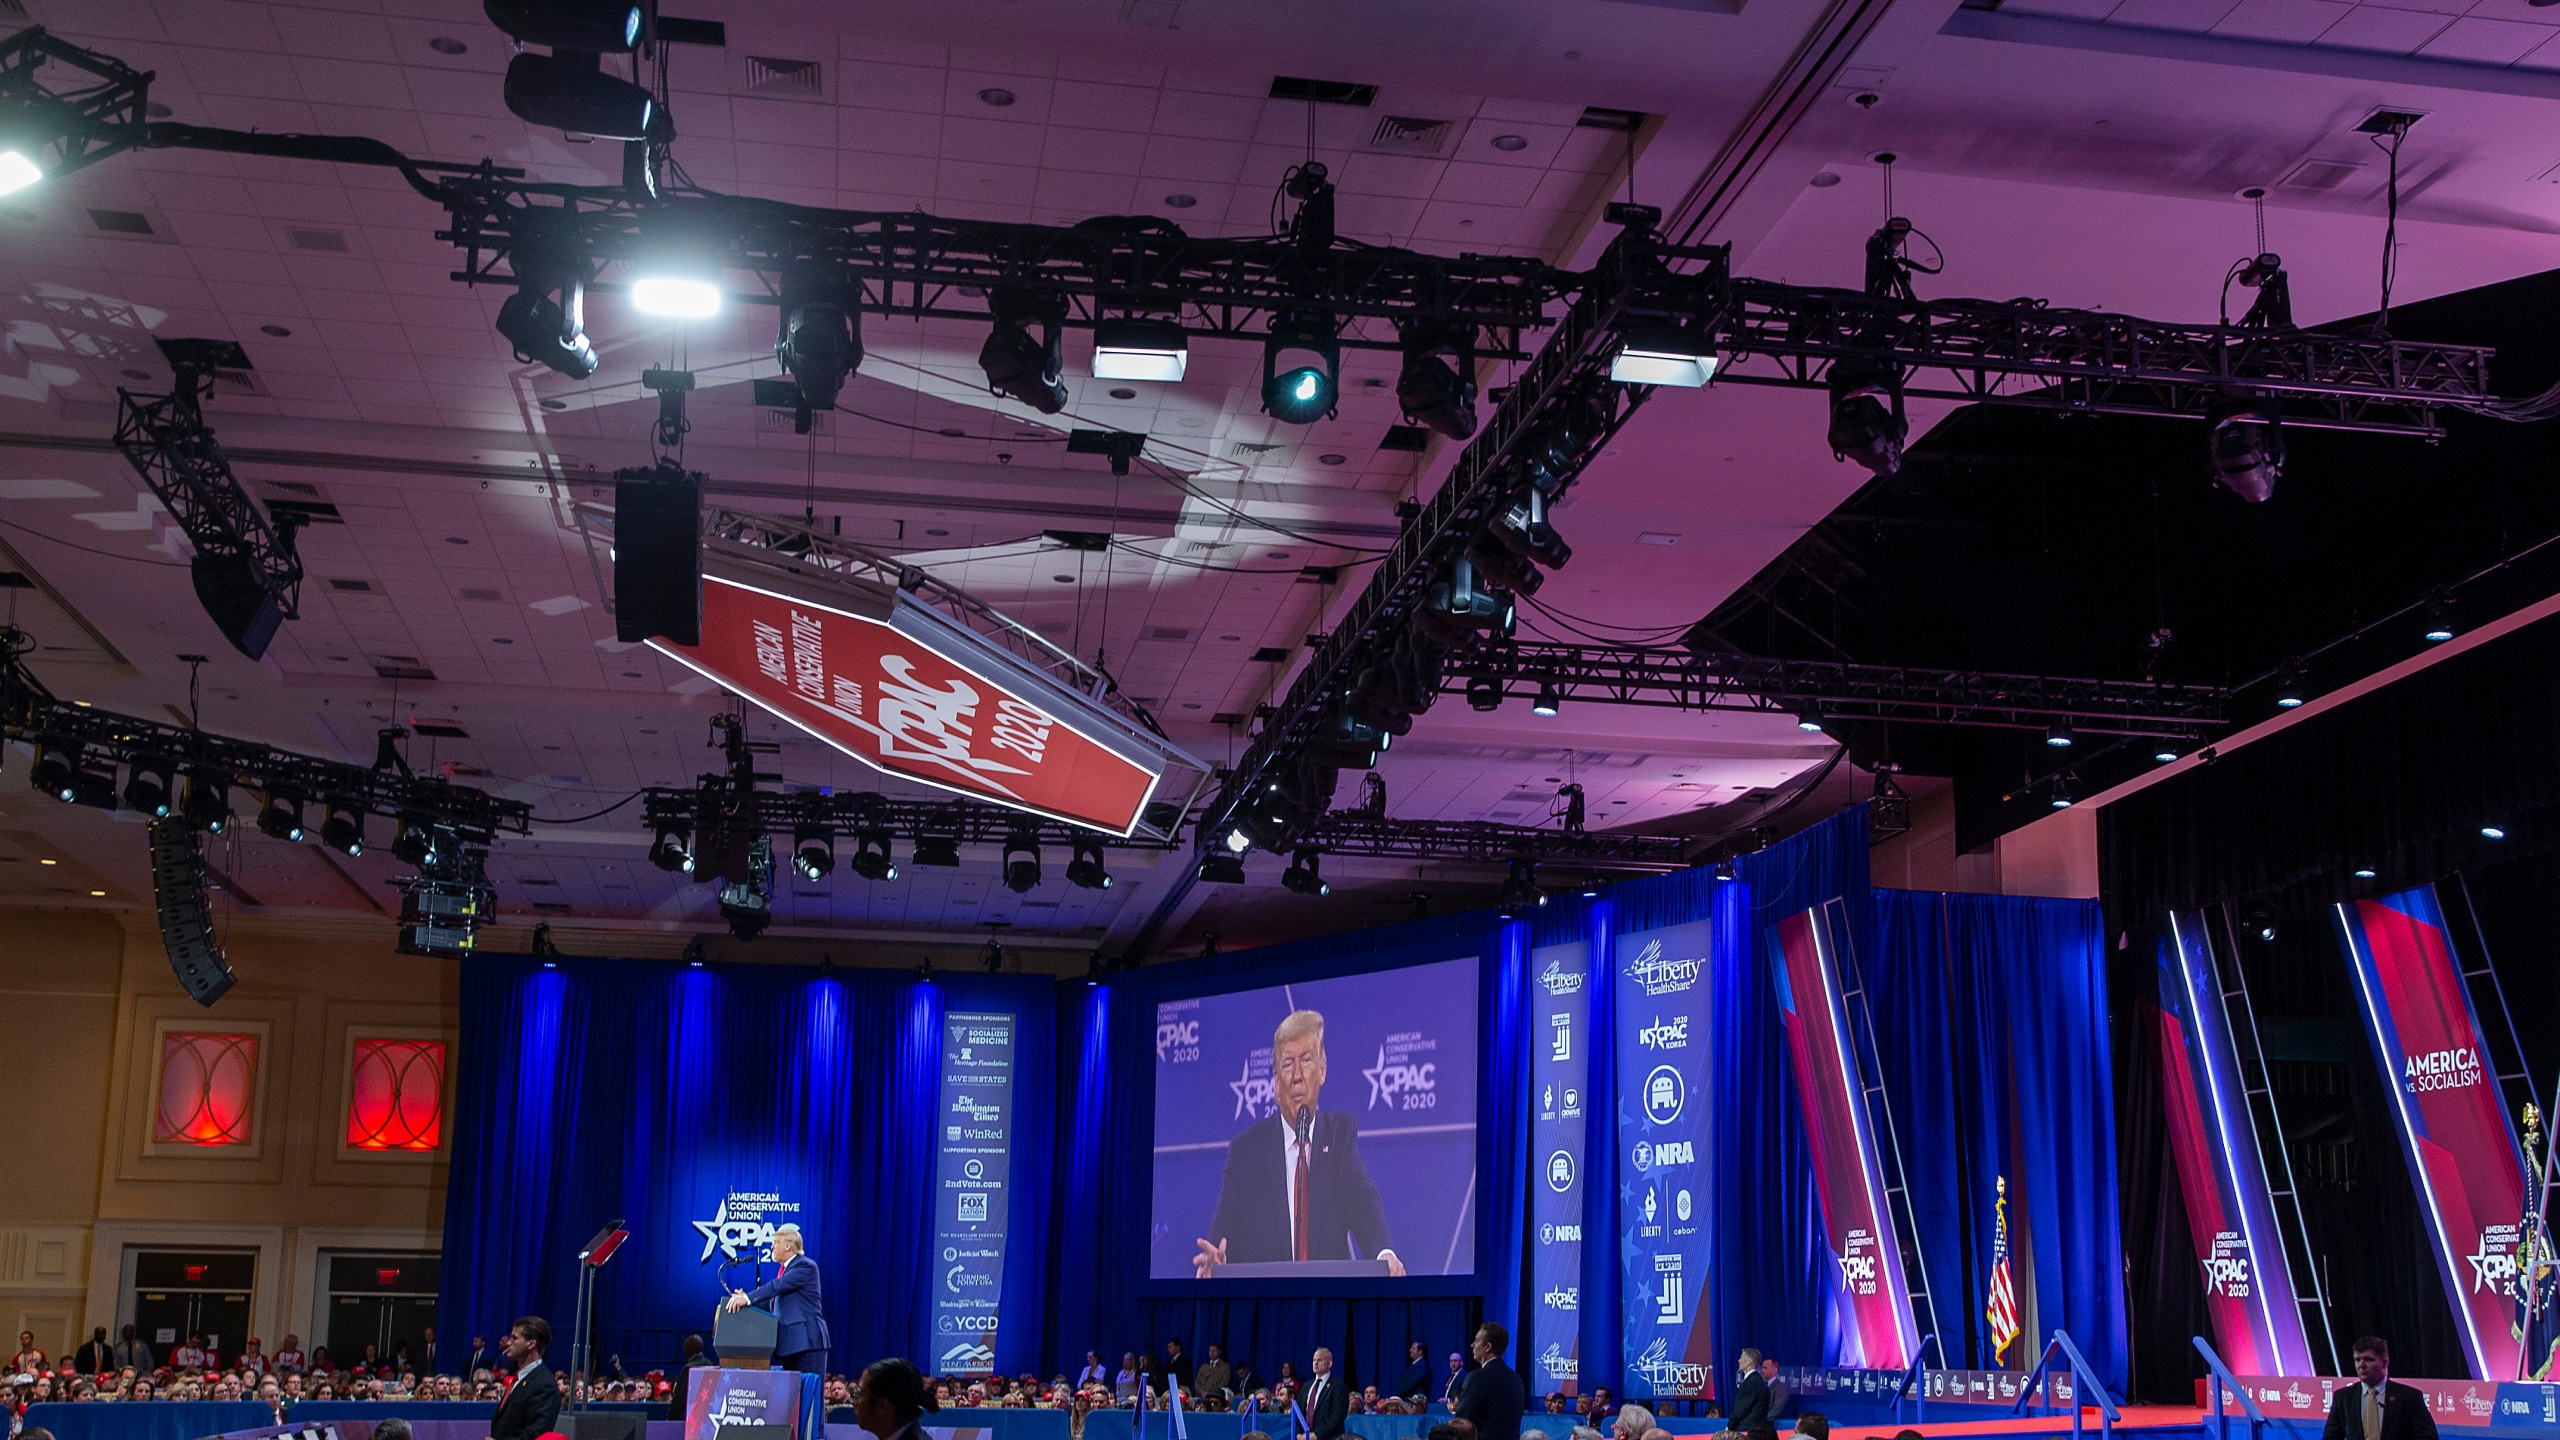 Donald Trump speaks during the annual Conservative Political Action Conference (CPAC) at Gaylord National Resort & Convention Center on Feb. 29, 2020 in National Harbor, Maryland. (Tasos Katopodis/Getty Images)